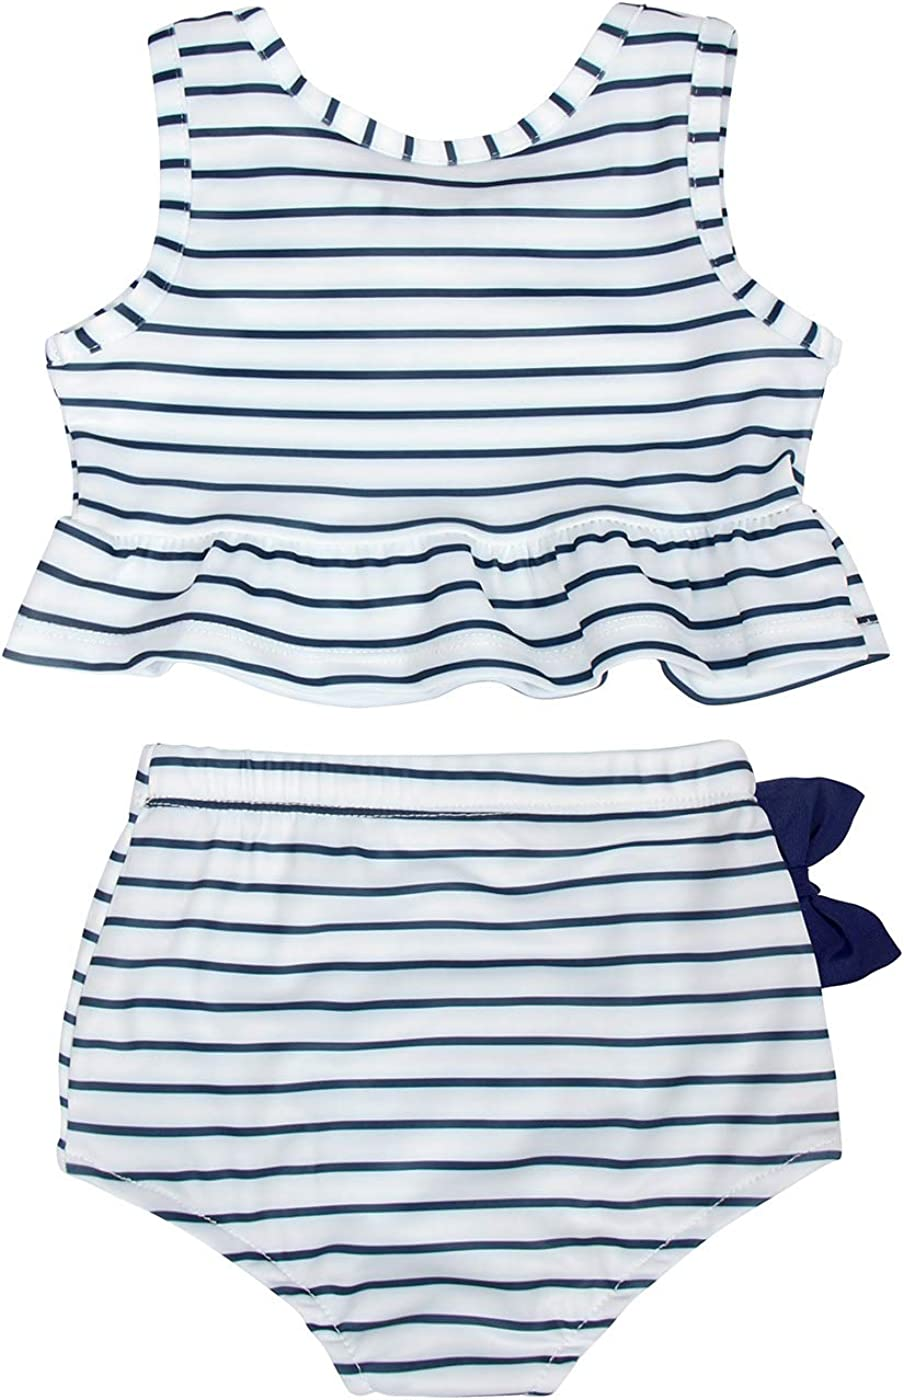 MetCuento Baby Girls Swimsuit Two Piece Bathing Suit Beach Pool Swimming Suit Swimwear Summer Clothes